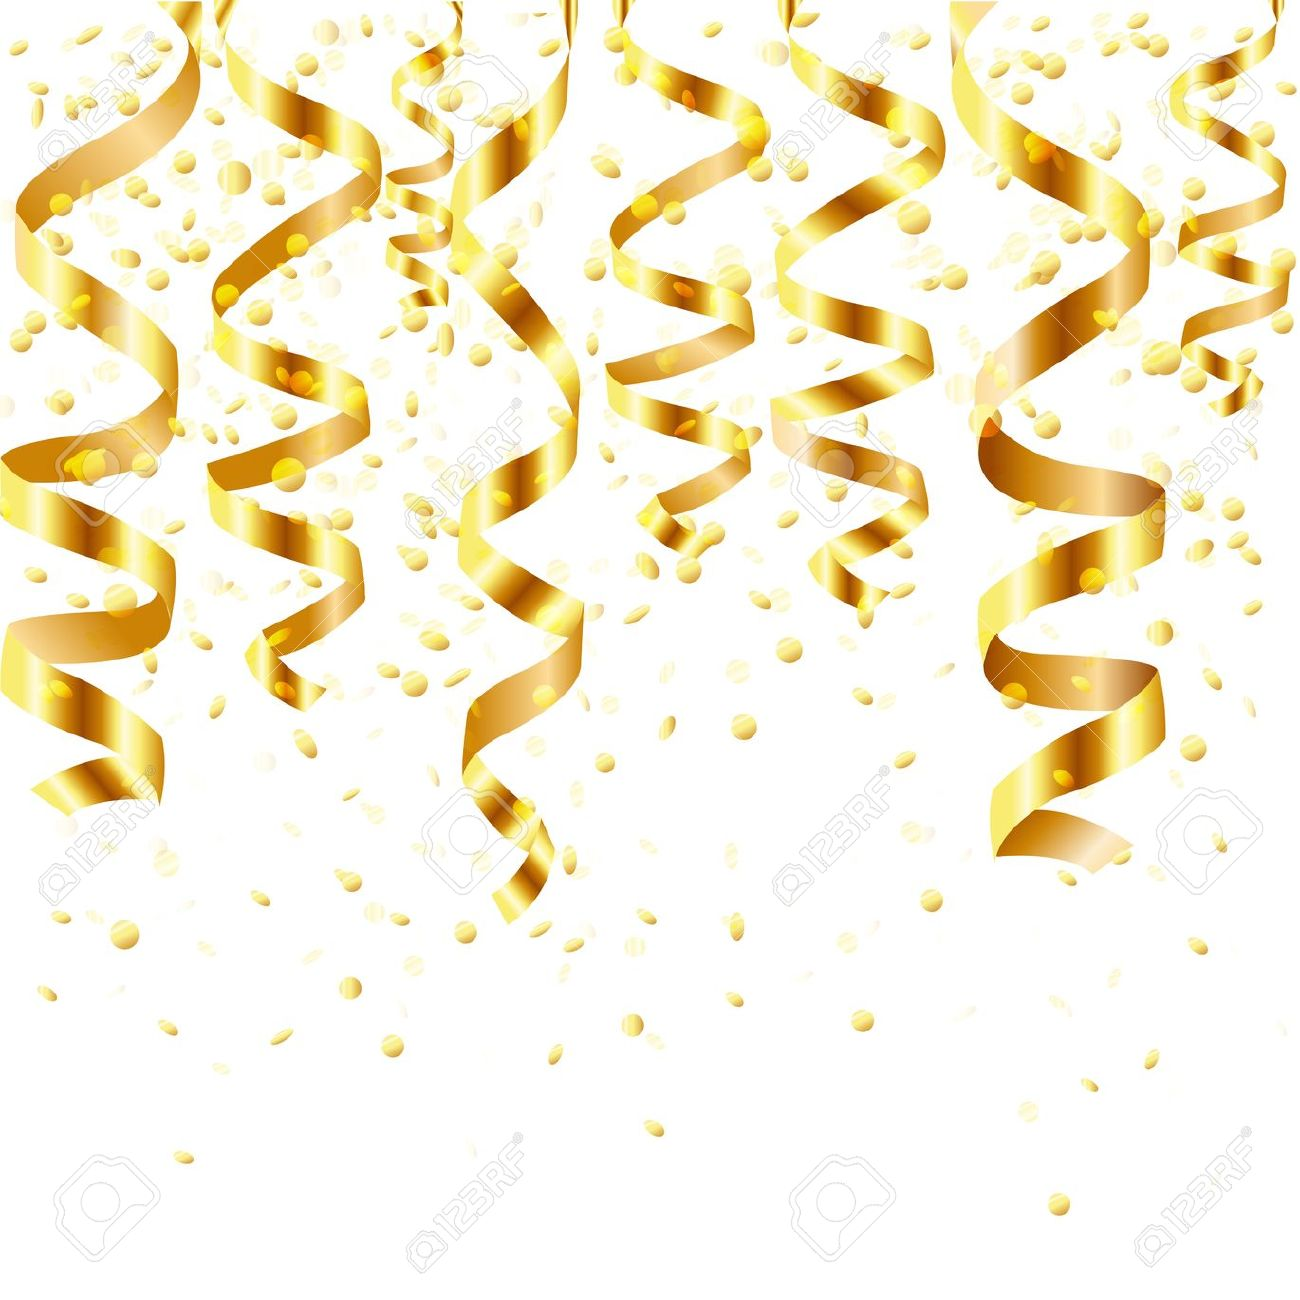 Gold cliparts making the. Streamers clipart golden